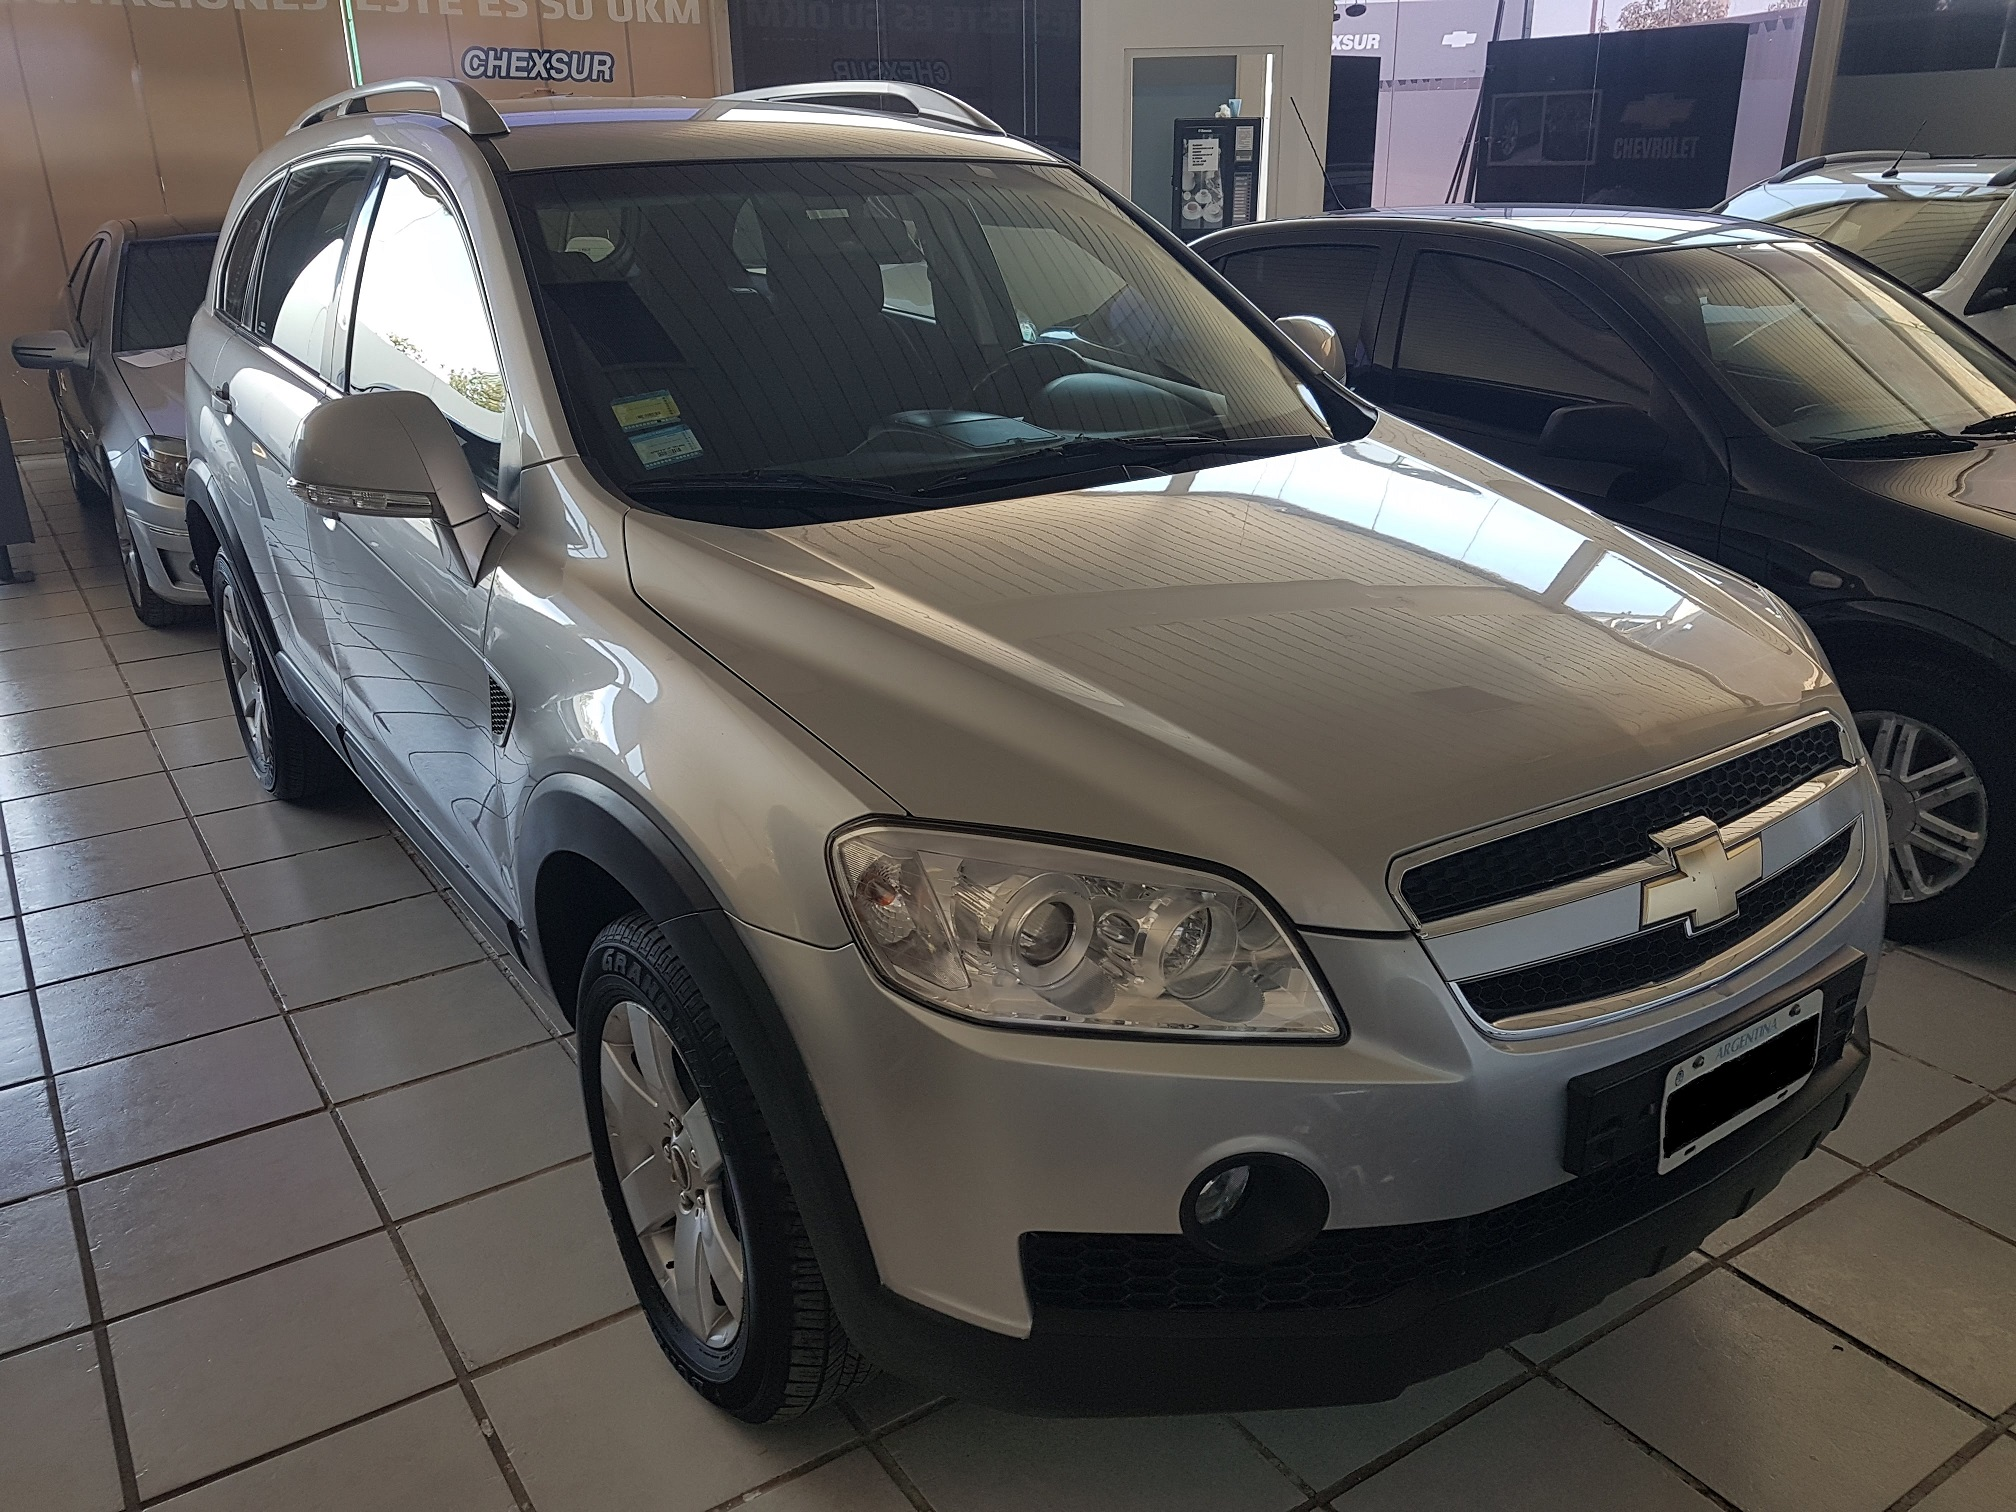 2008 Chevrolet Captiva LT 2.0